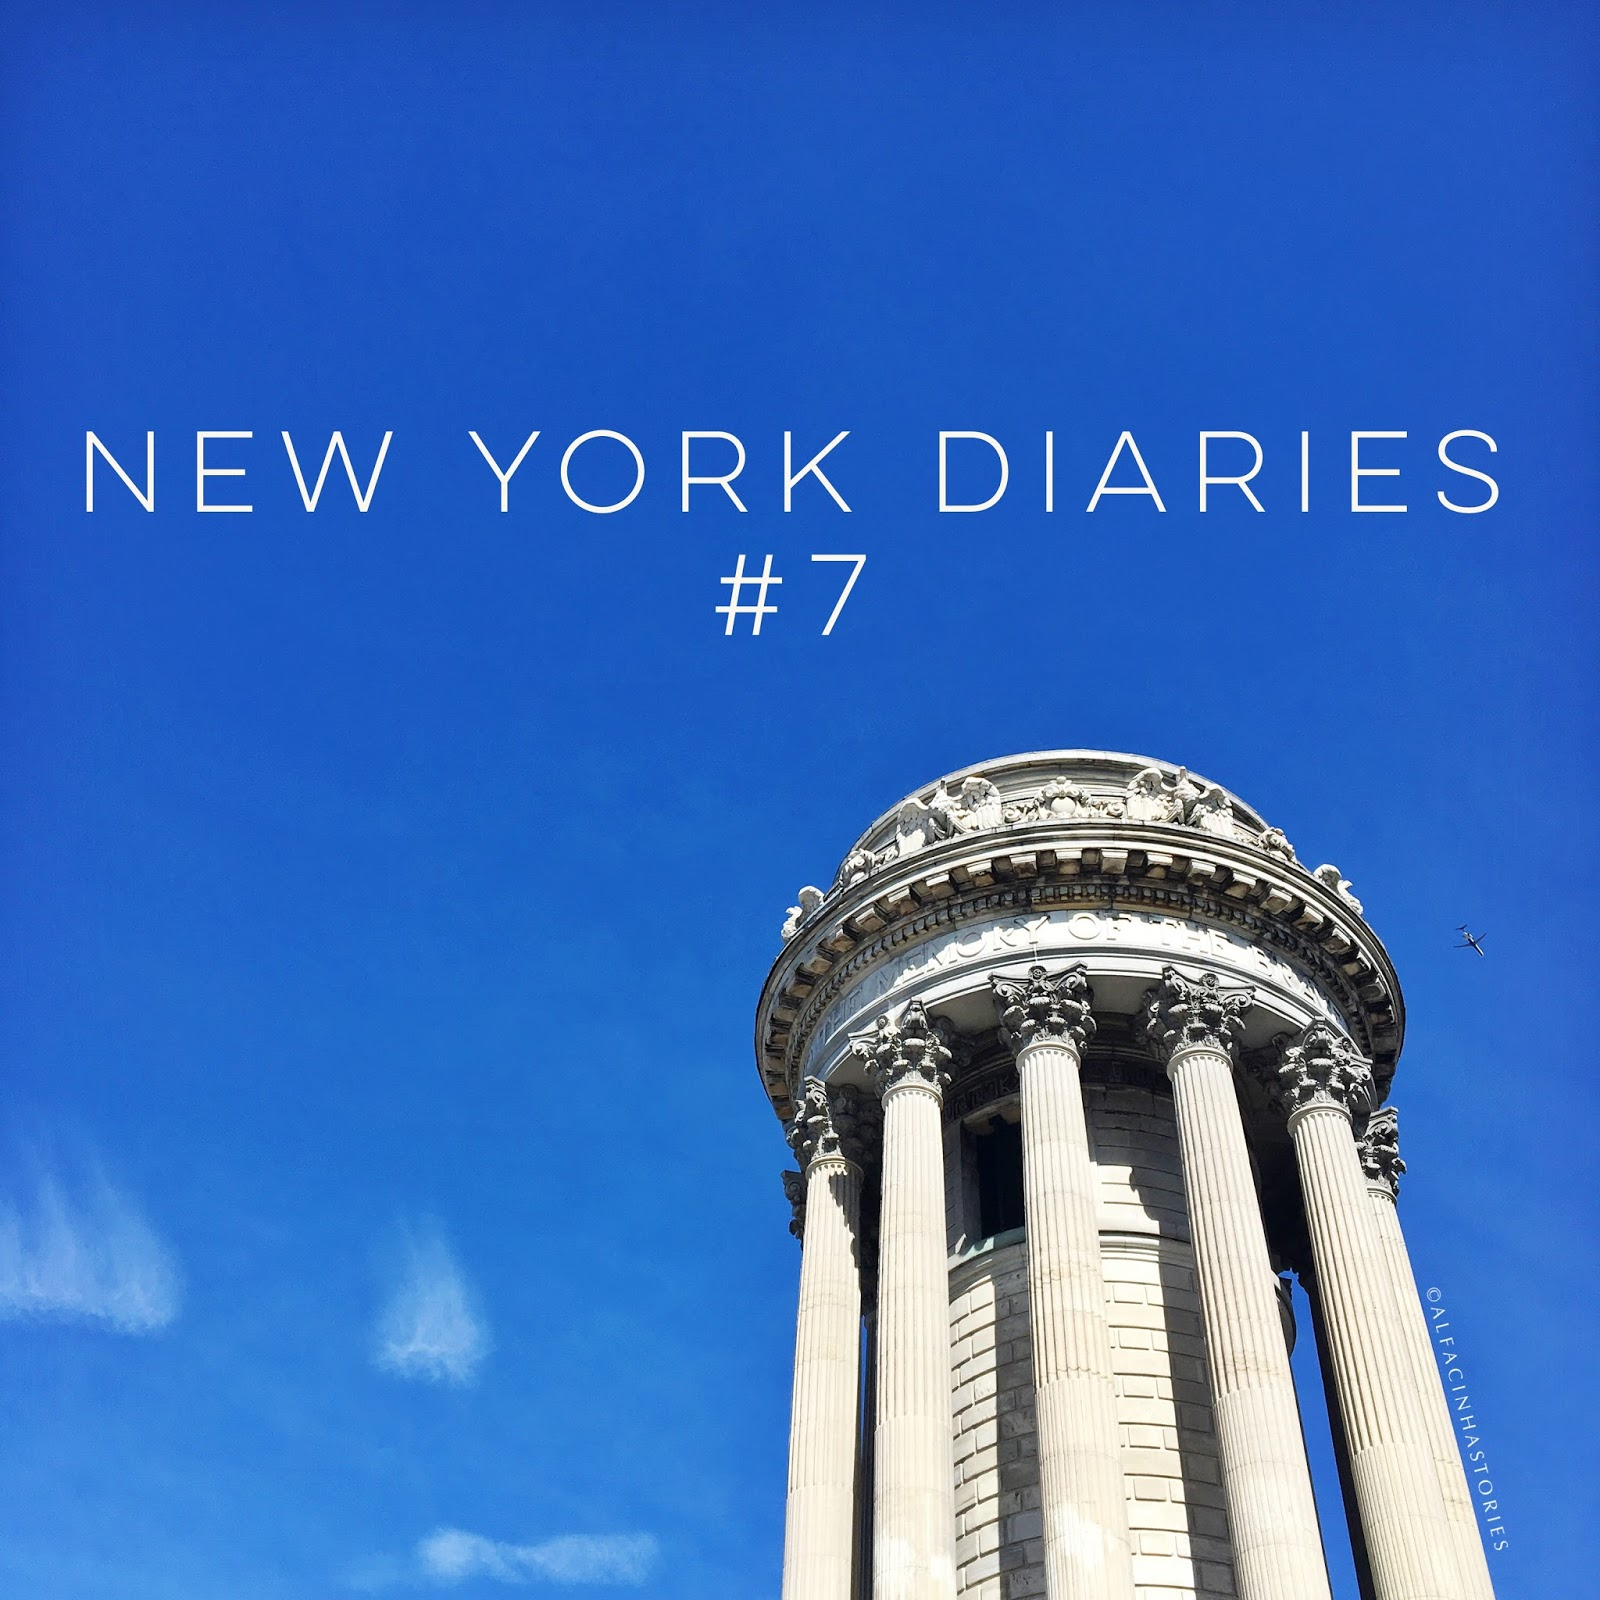 The New York Diaries #7